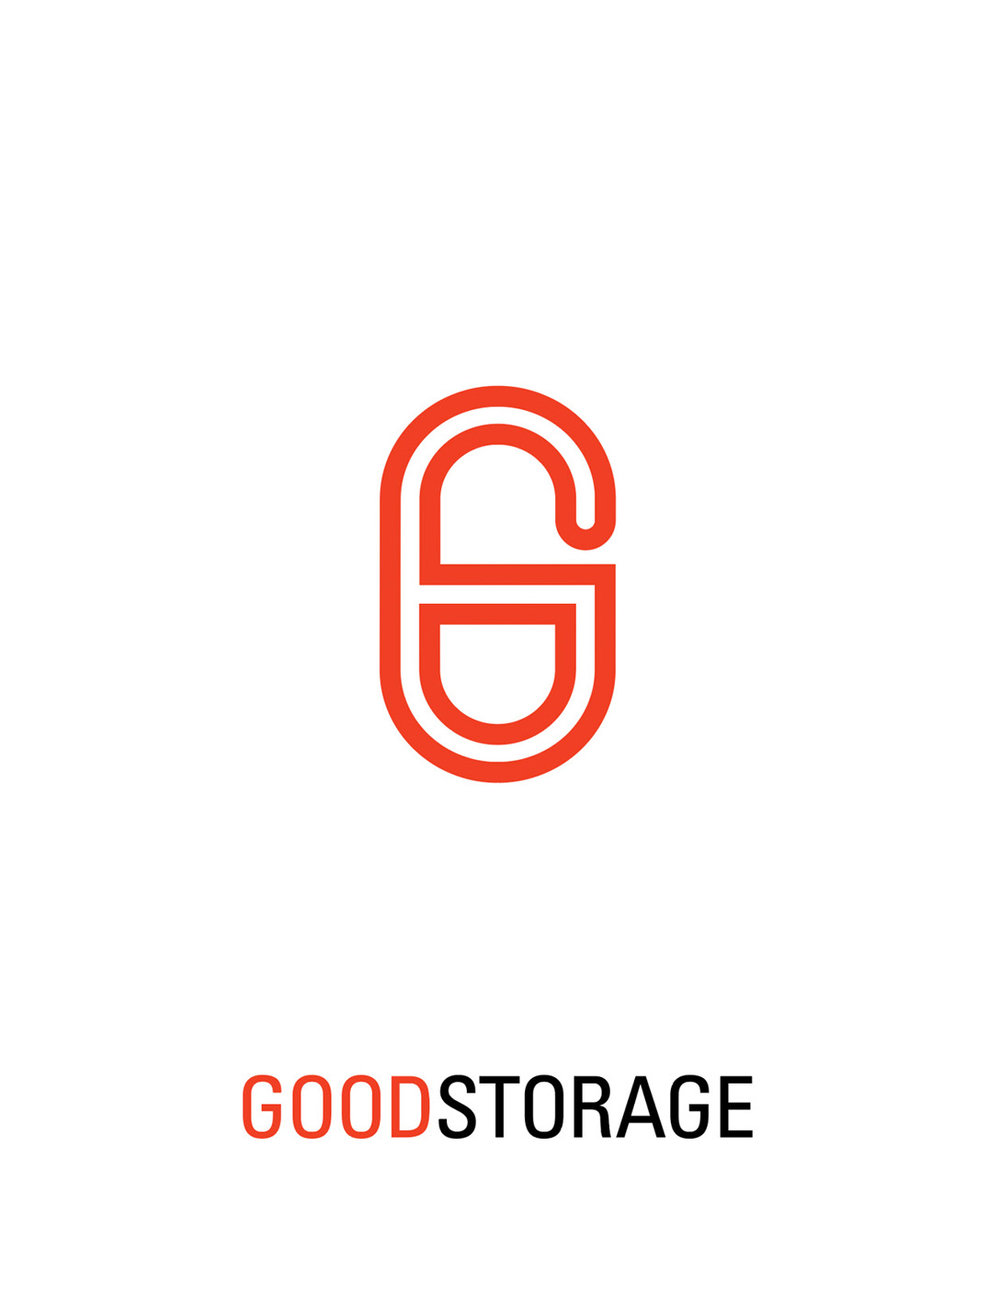 Goodstorage.logo.jpg